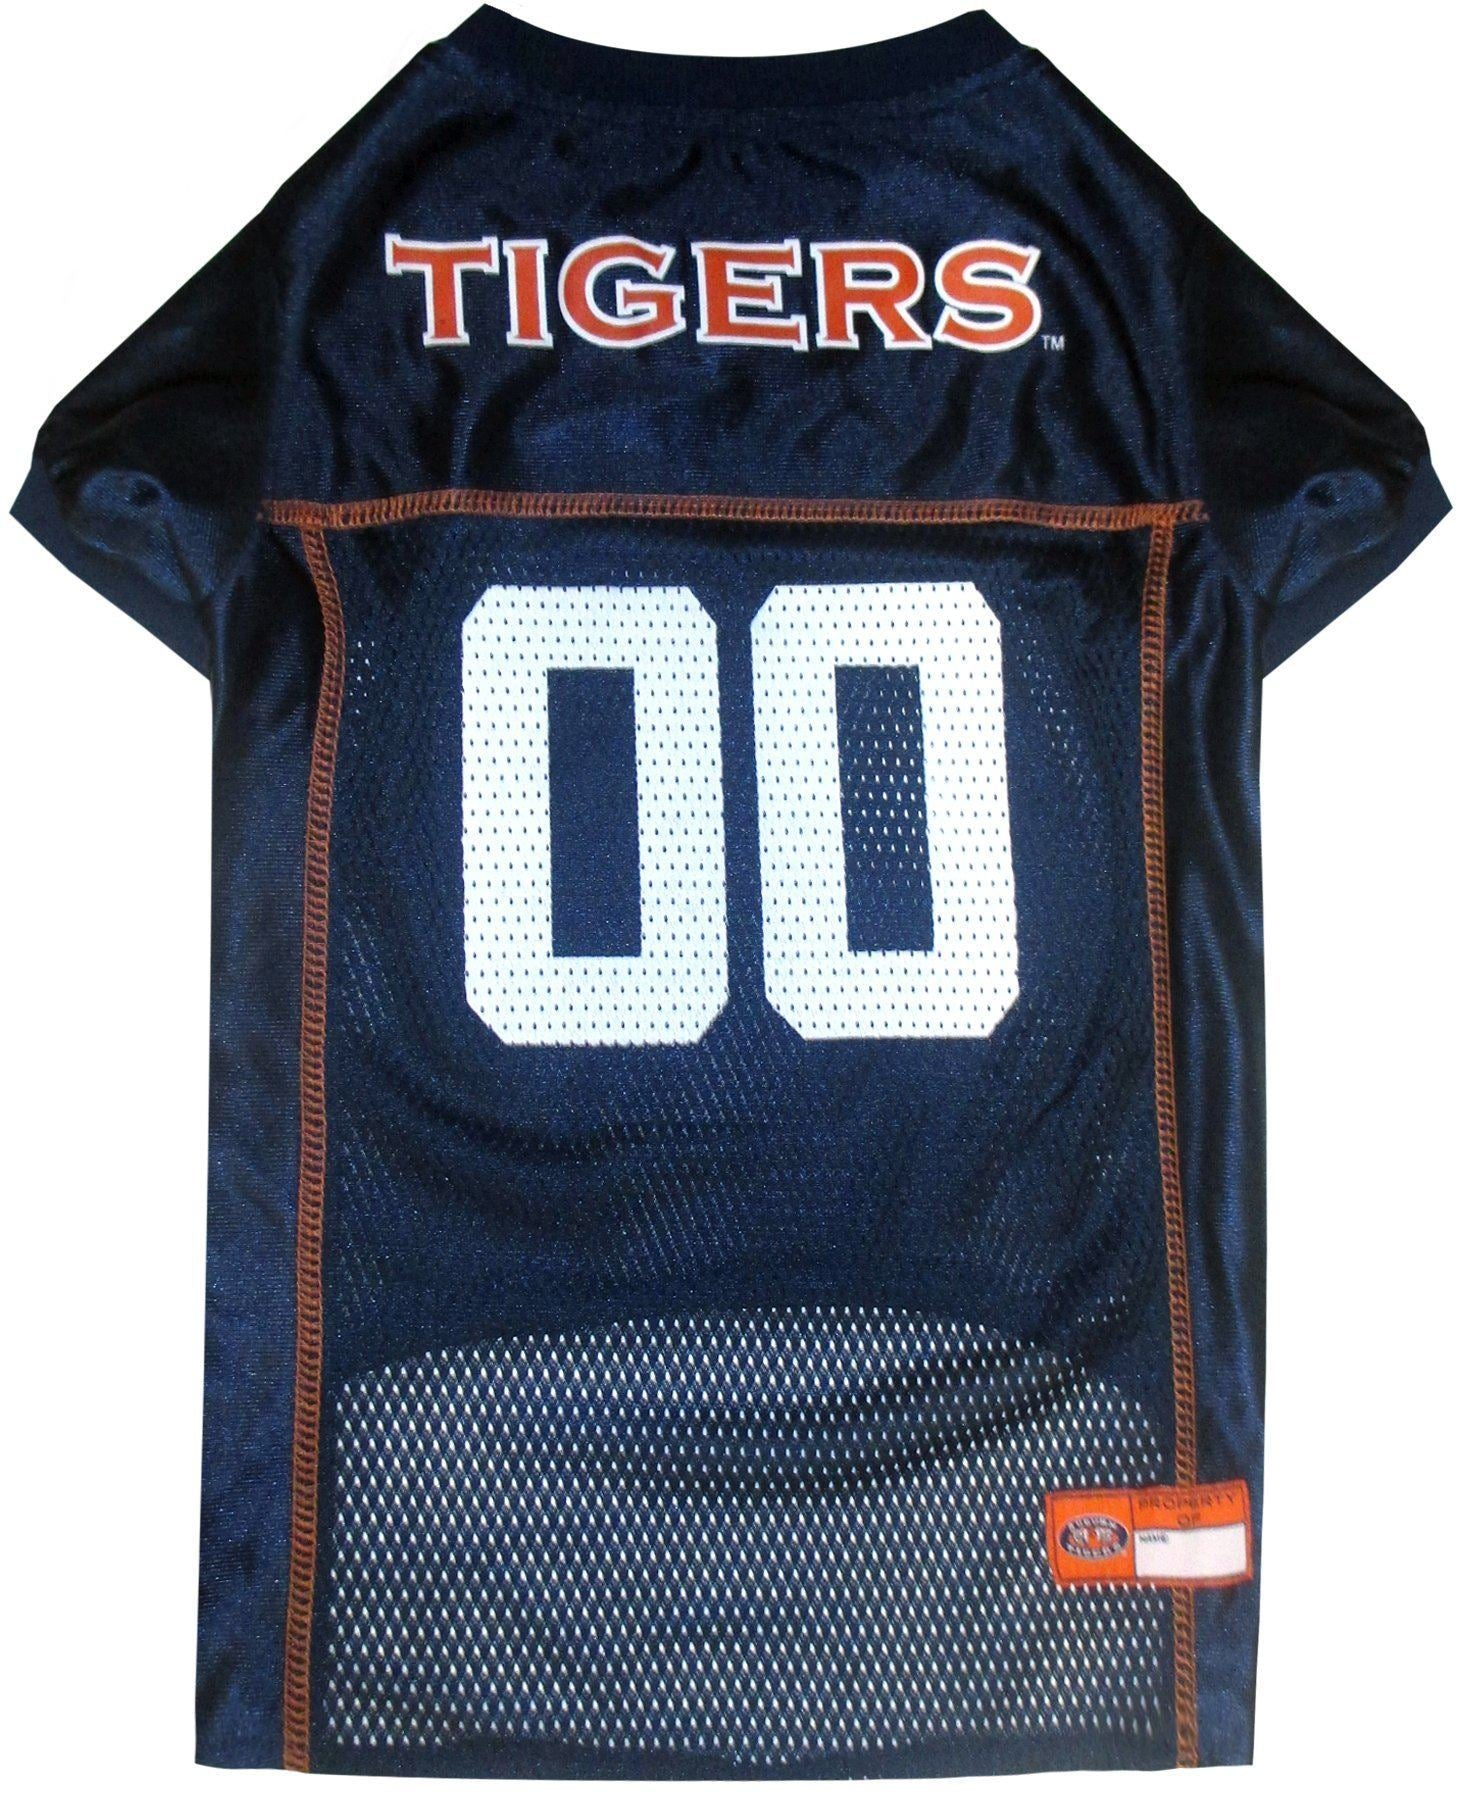 quality design 7756c a7445 Auburn Tigers Puppy Dog Football Jersey